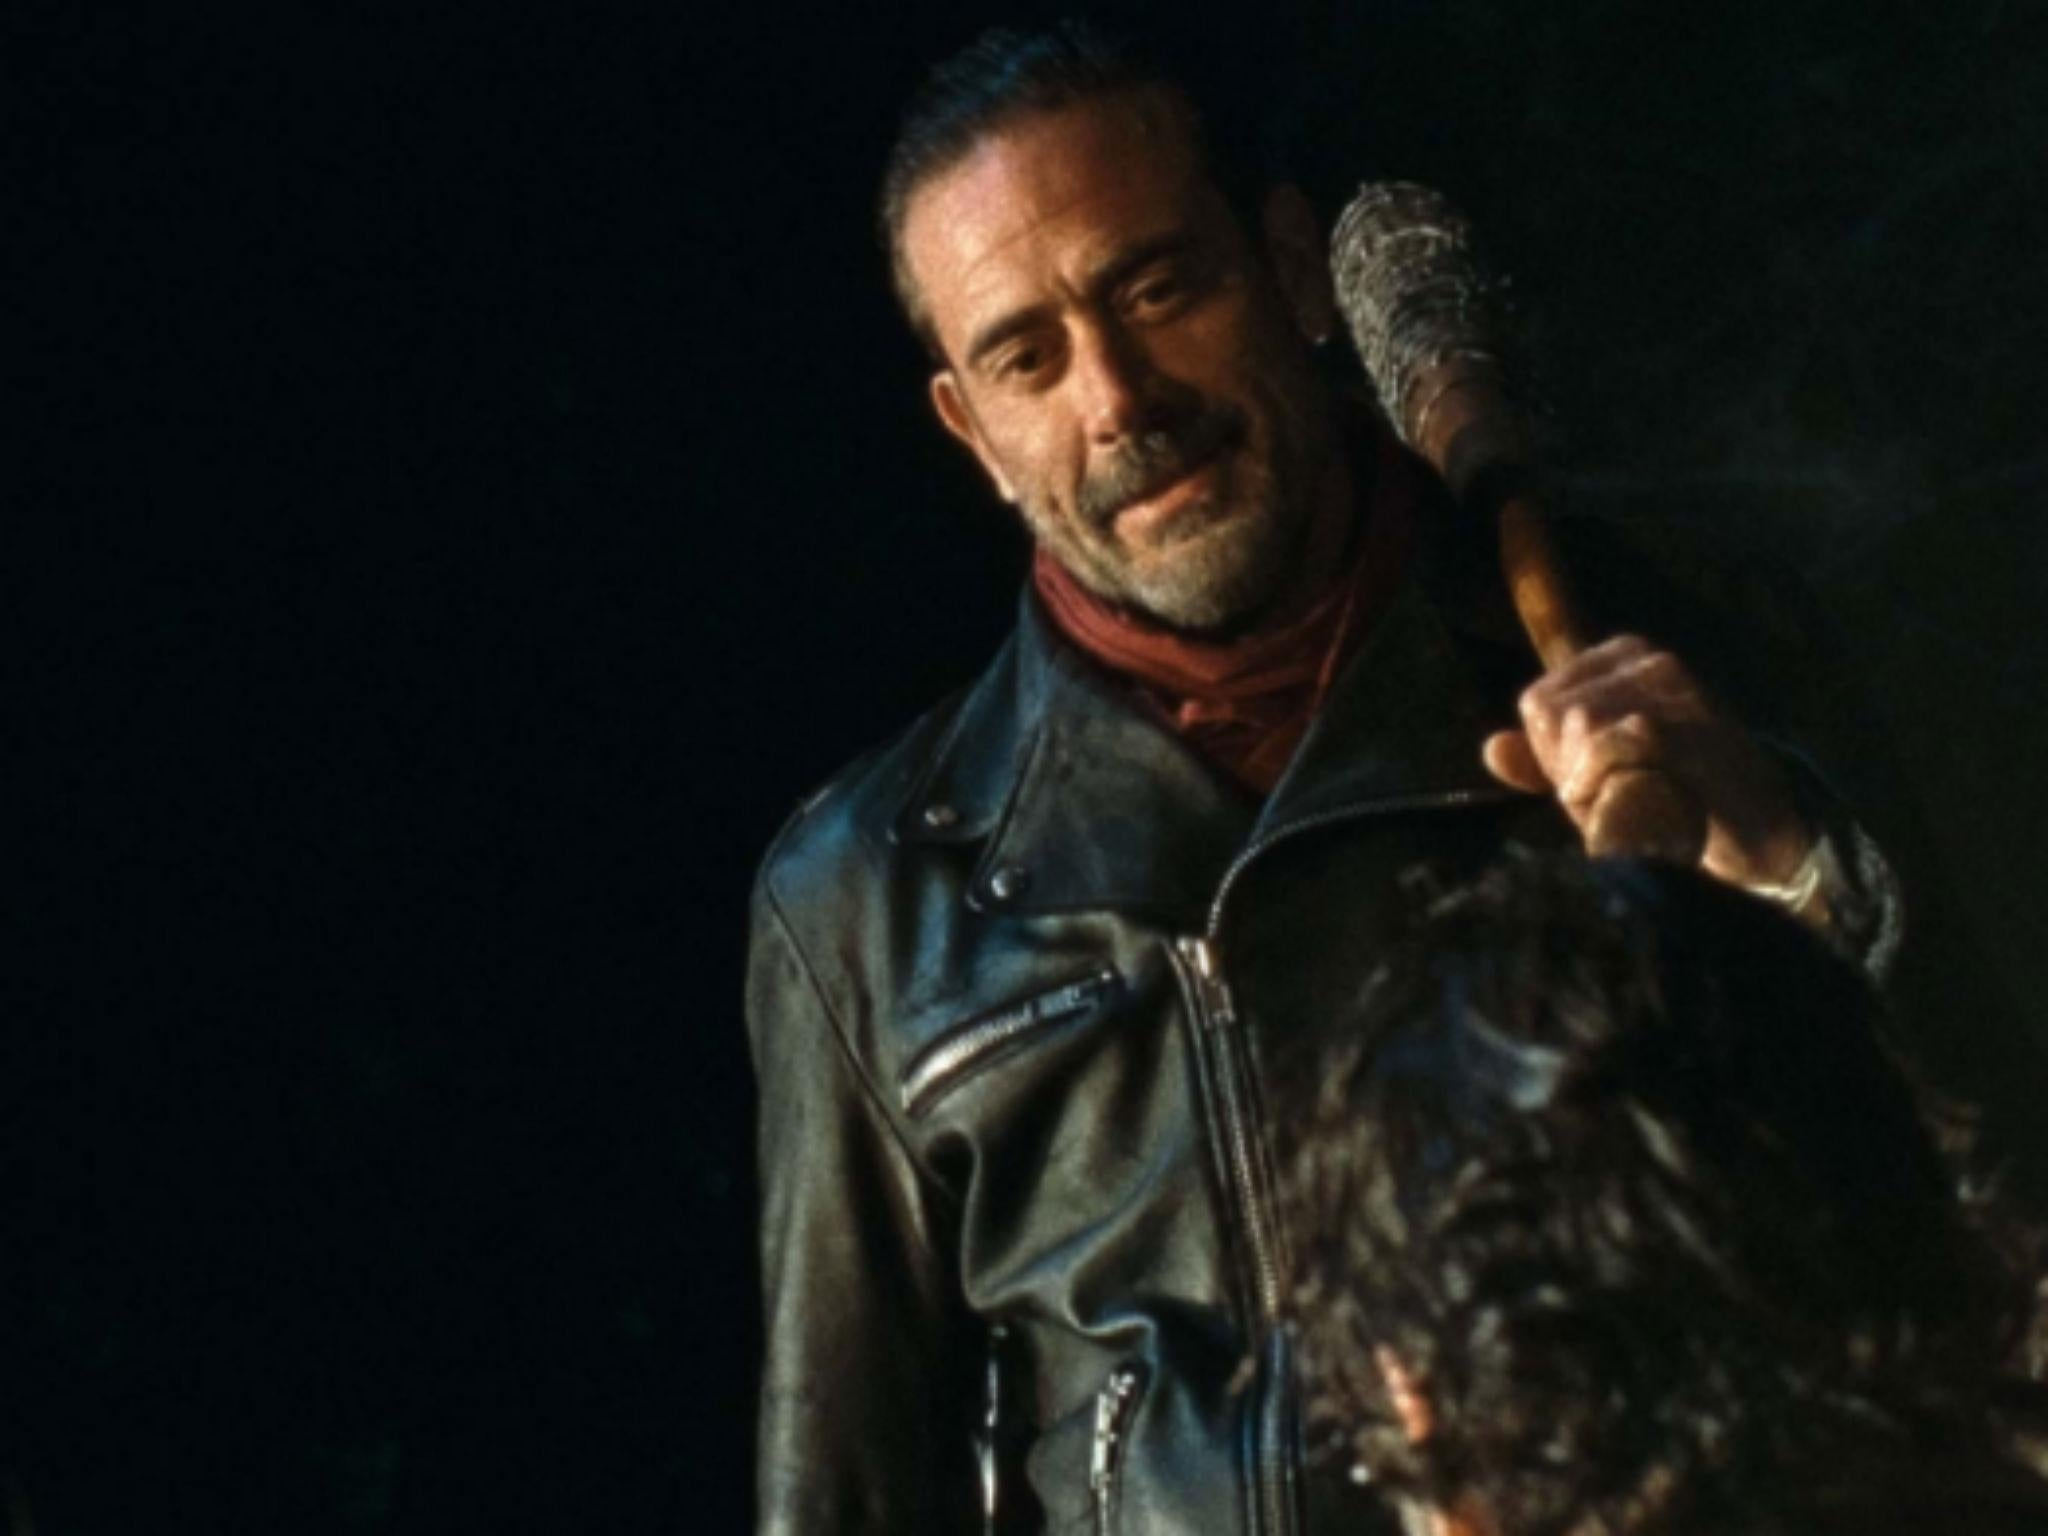 The Walking Dead movie: Andrew Lincoln's Rick Grimes return